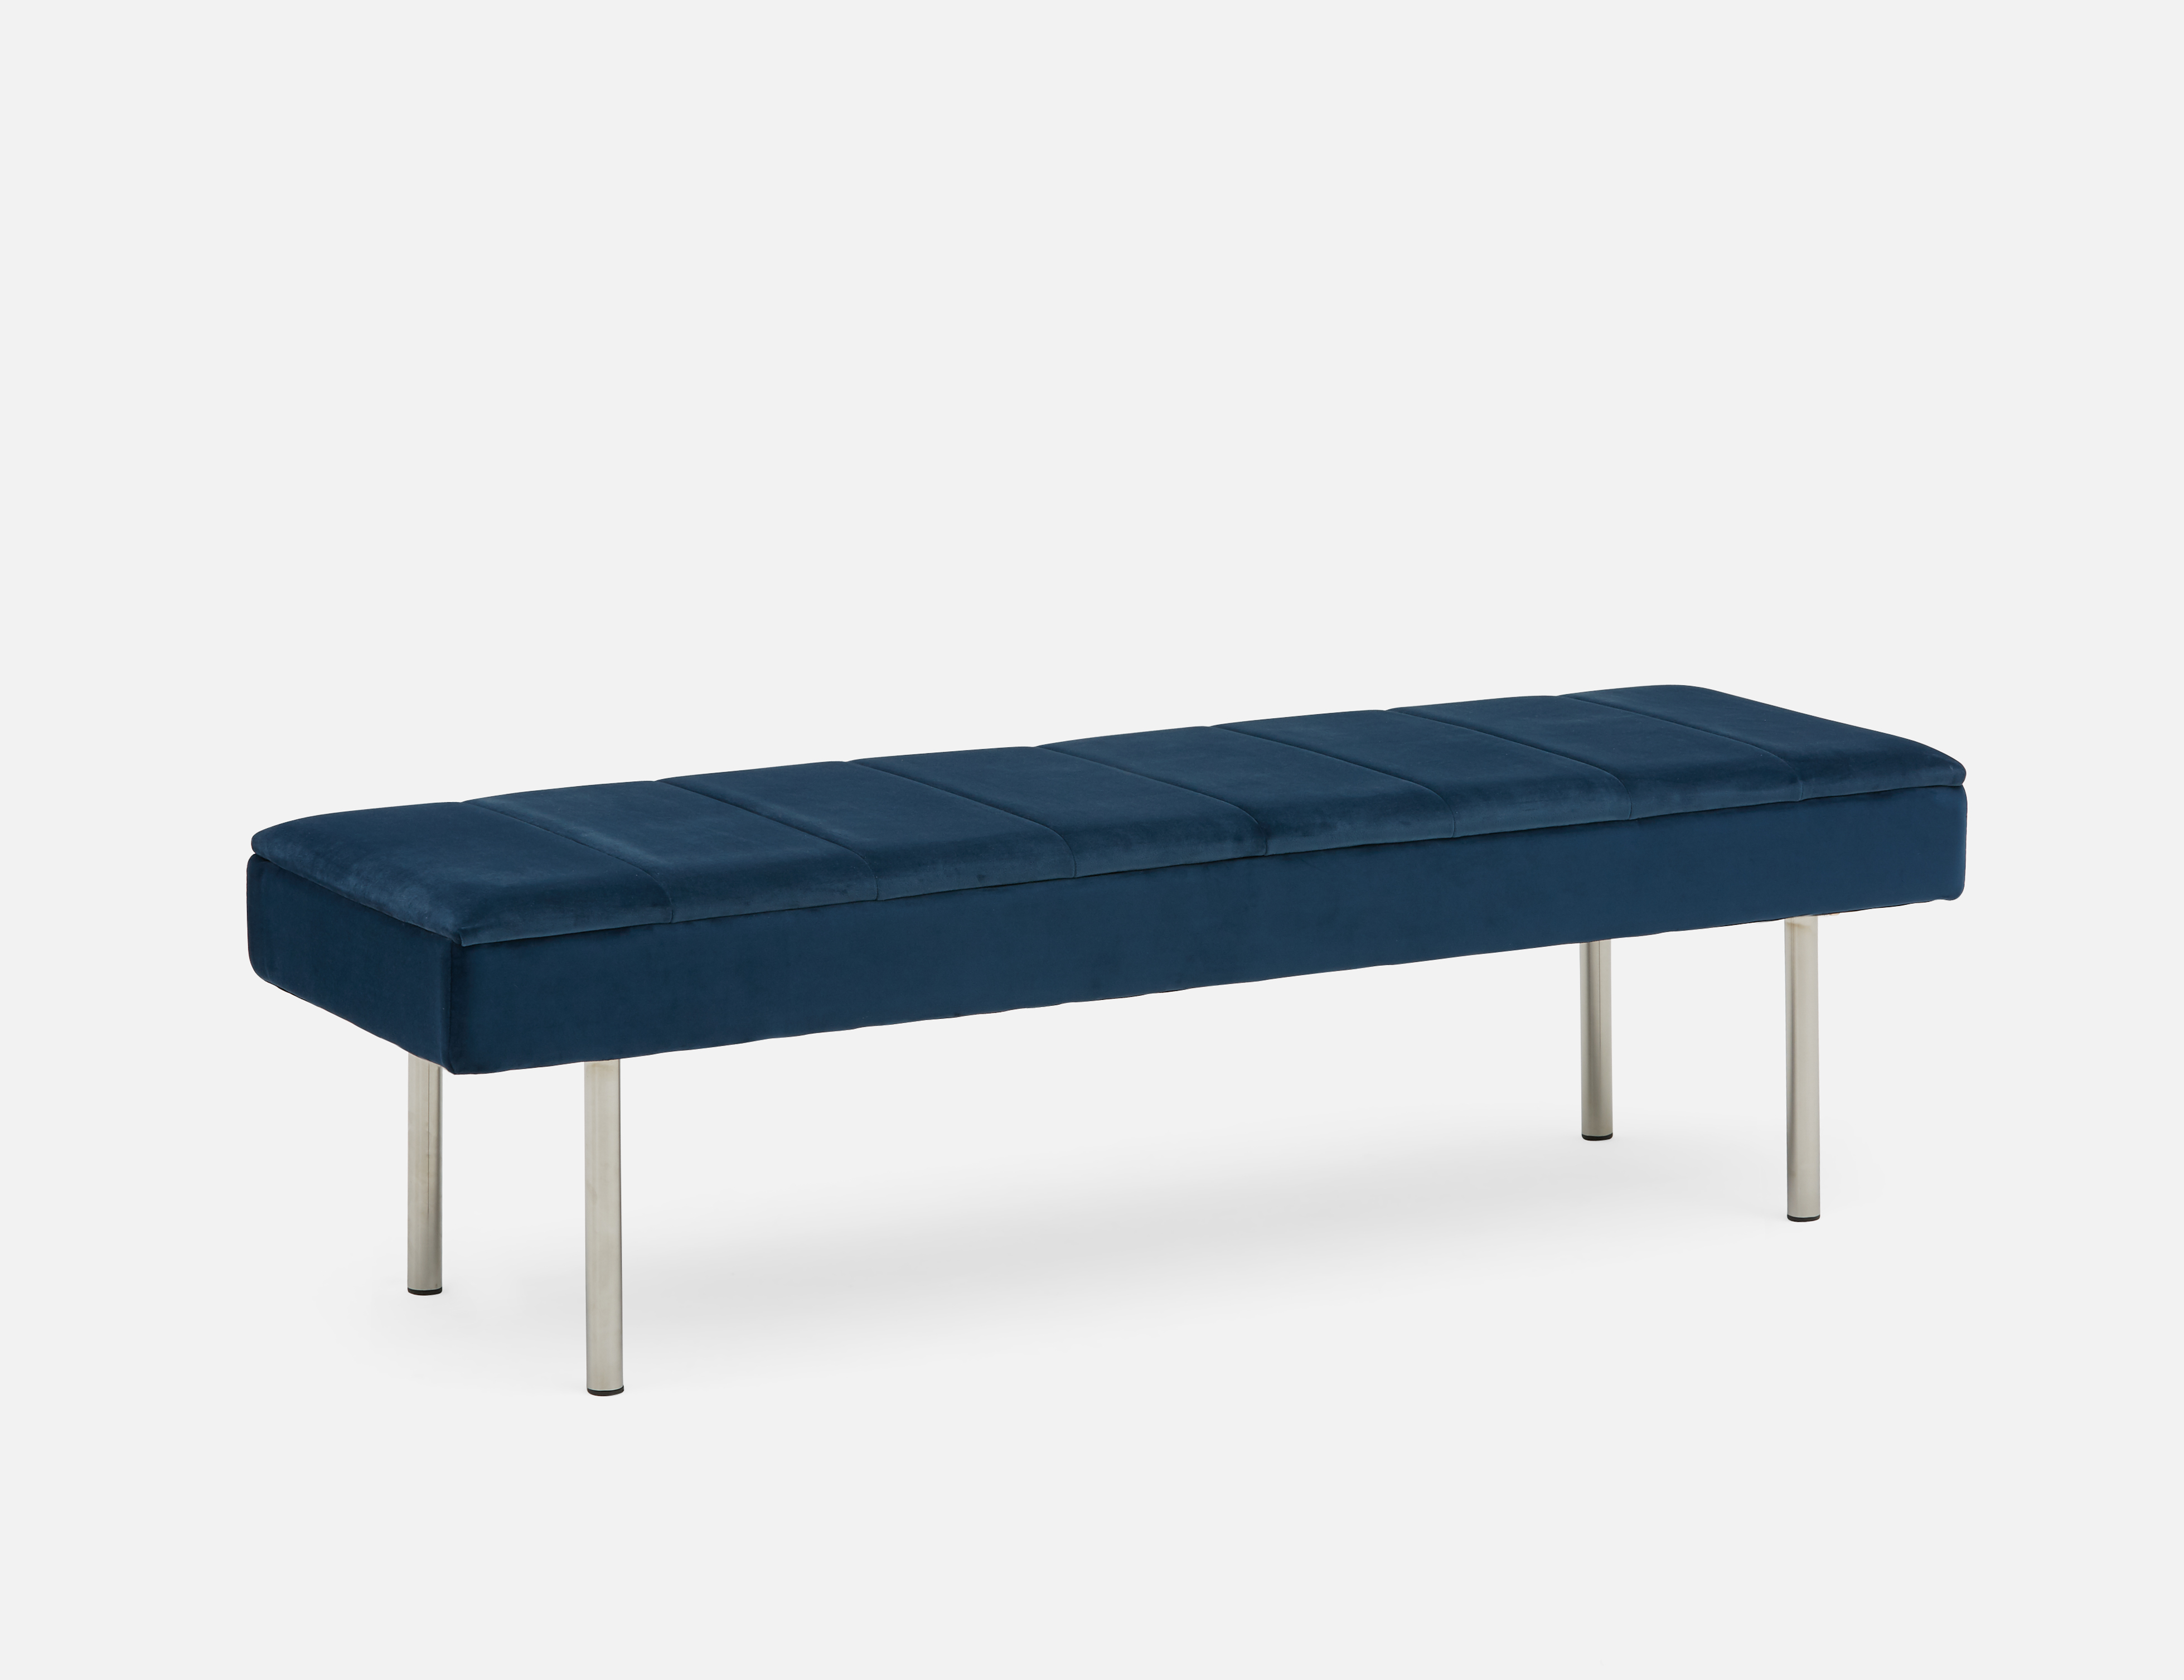 Awesome Irma Blue Bench Products In 2019 Dining Room Bench Dailytribune Chair Design For Home Dailytribuneorg